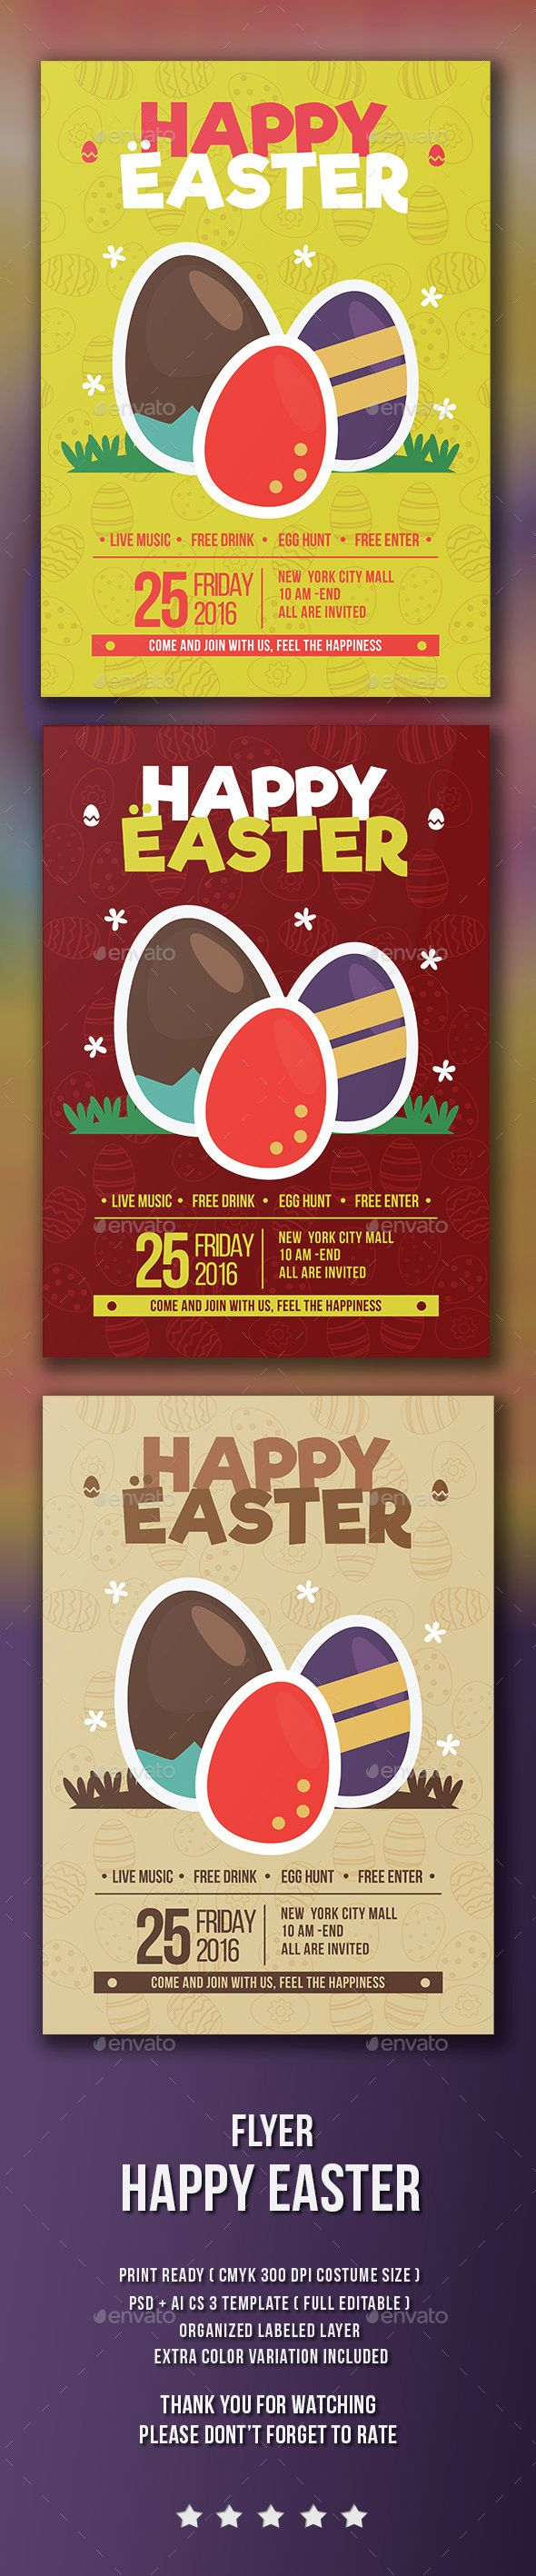 Happy Easter Flyer Template PSD Download here http